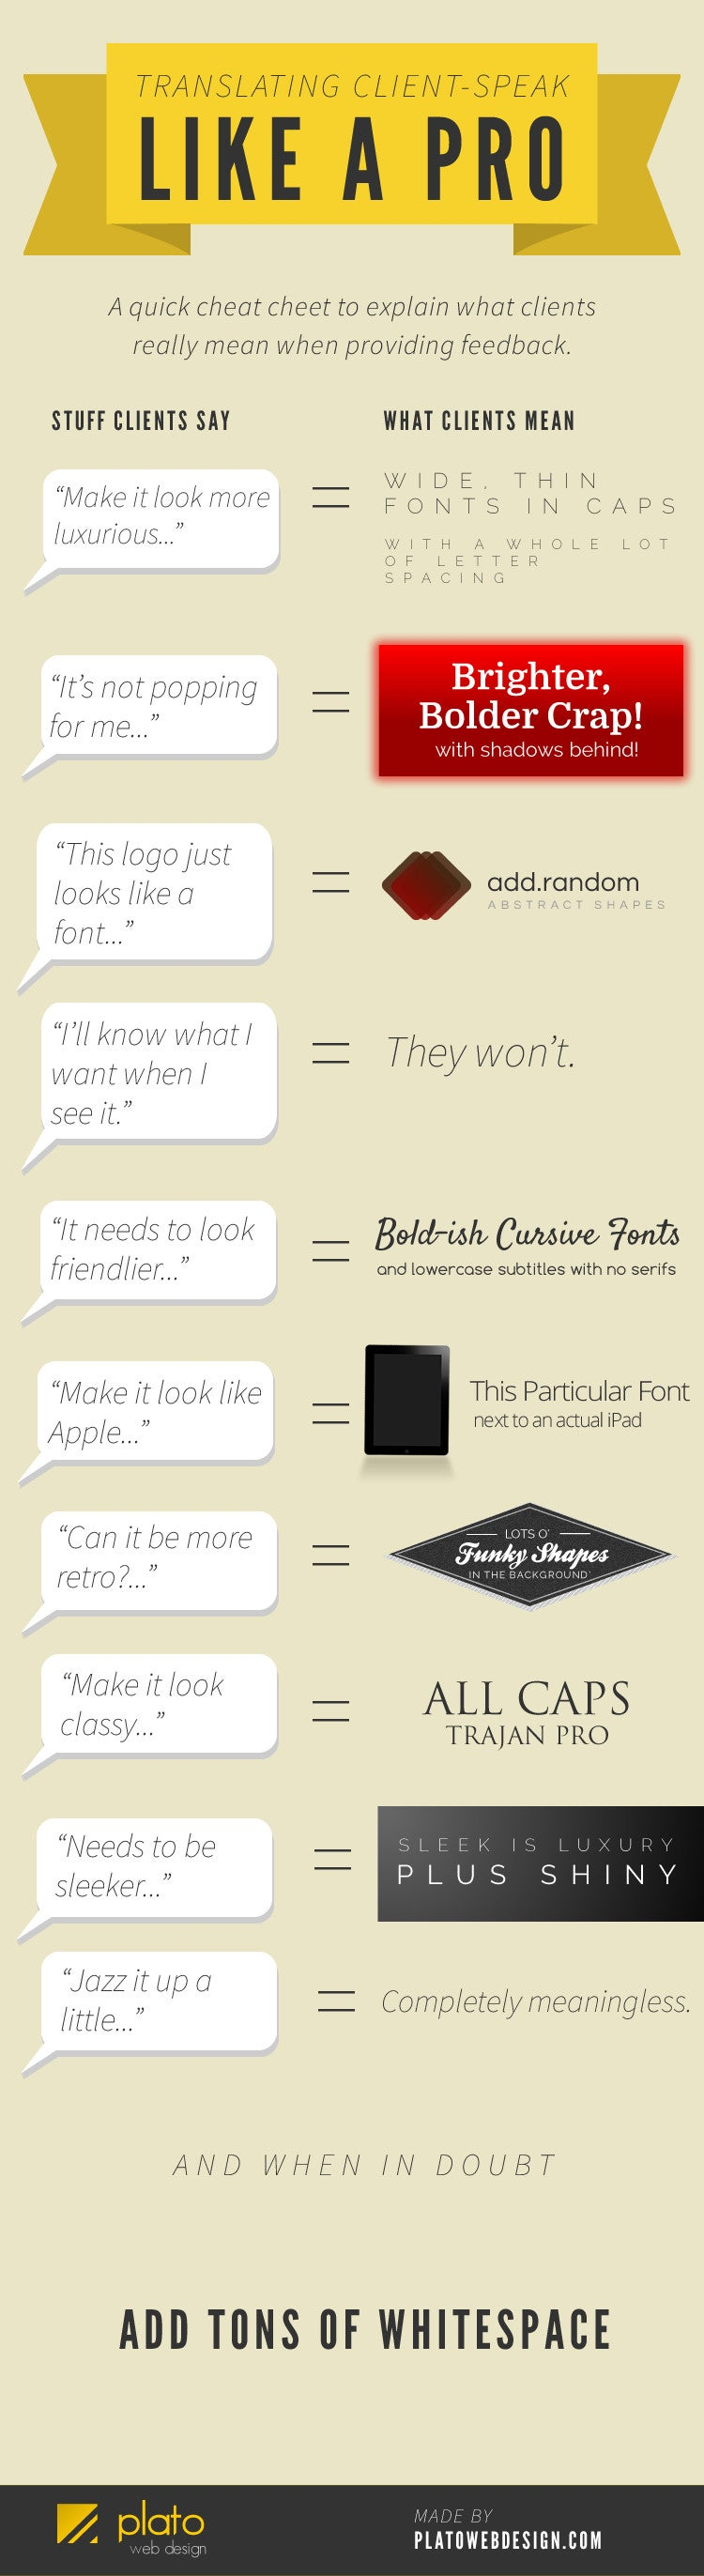 This Graphic Translates Web Design Feedback into Plain English